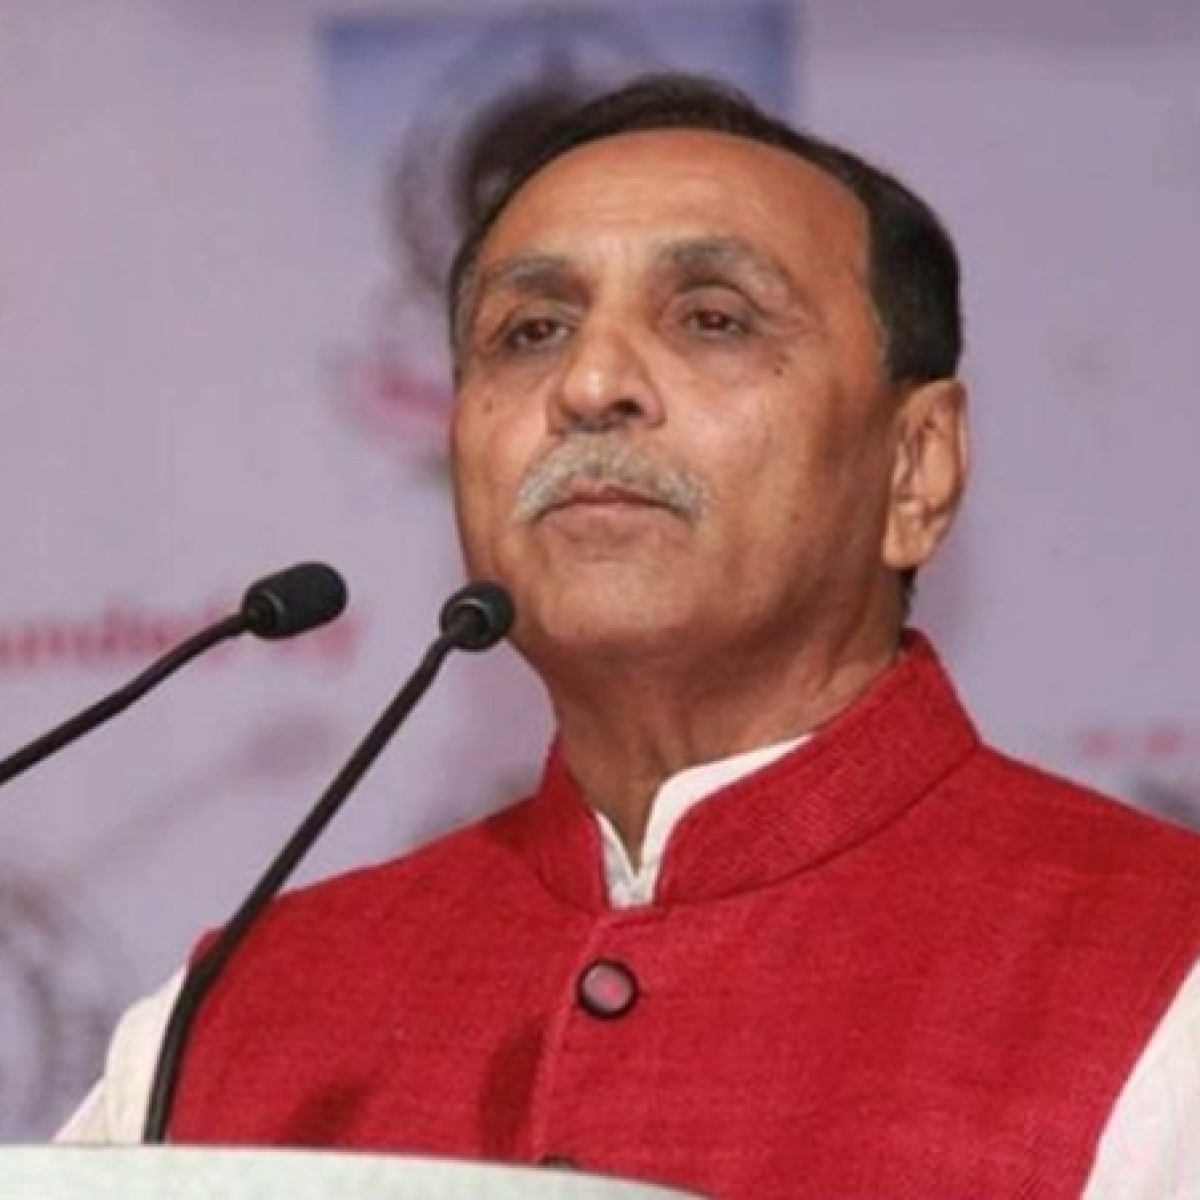 Shaheen Bagh protest 'totally communal', natural that others are worried: Vijay Rupani